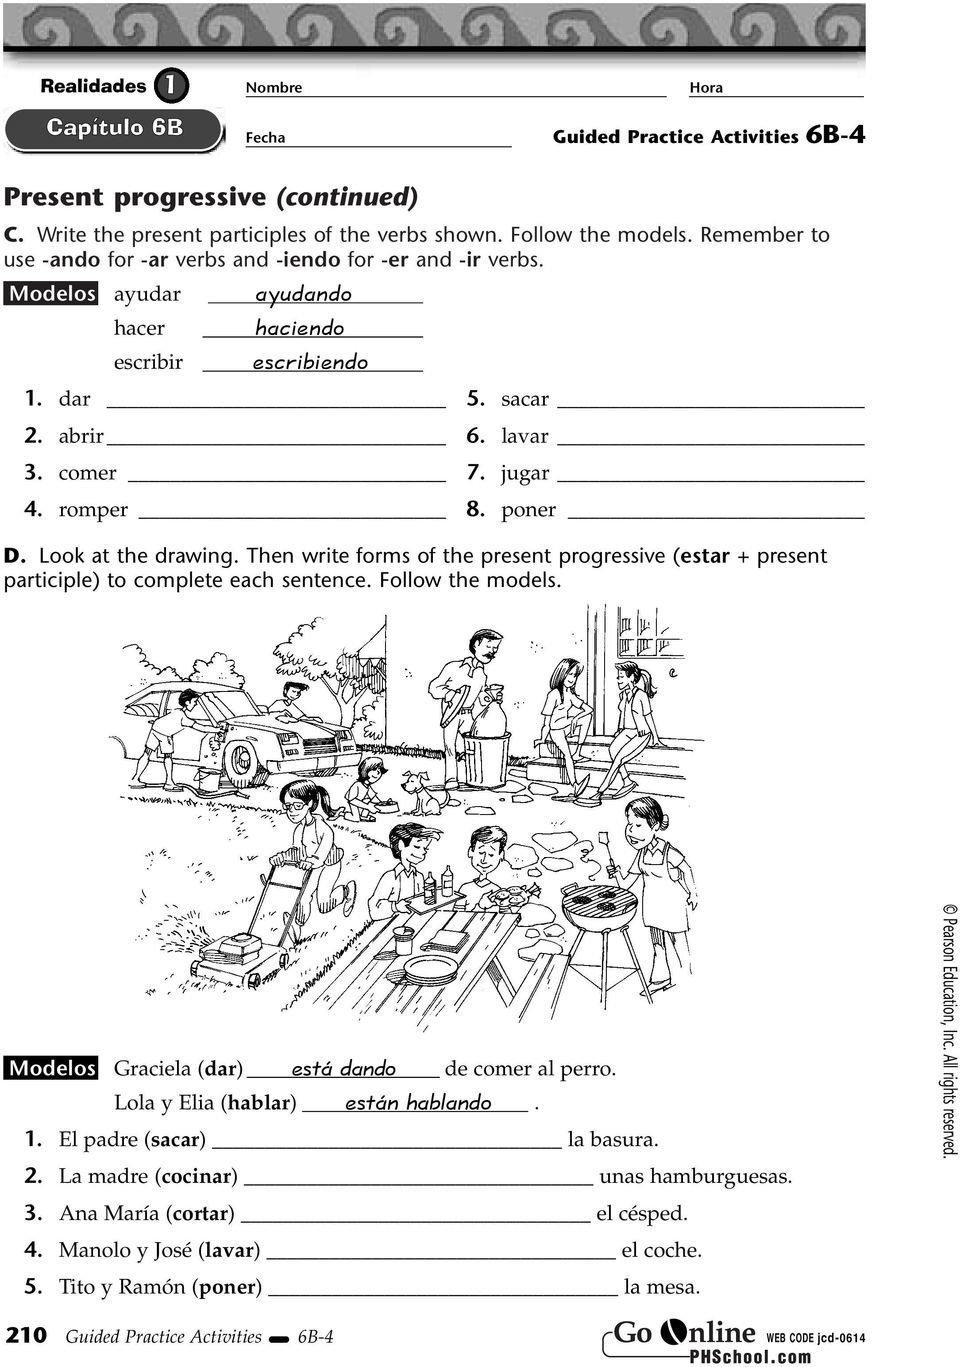 poner D. Look at the drawing. Then write forms of the present progressive (estar + present participle) to complete each sentence. Follow the models.